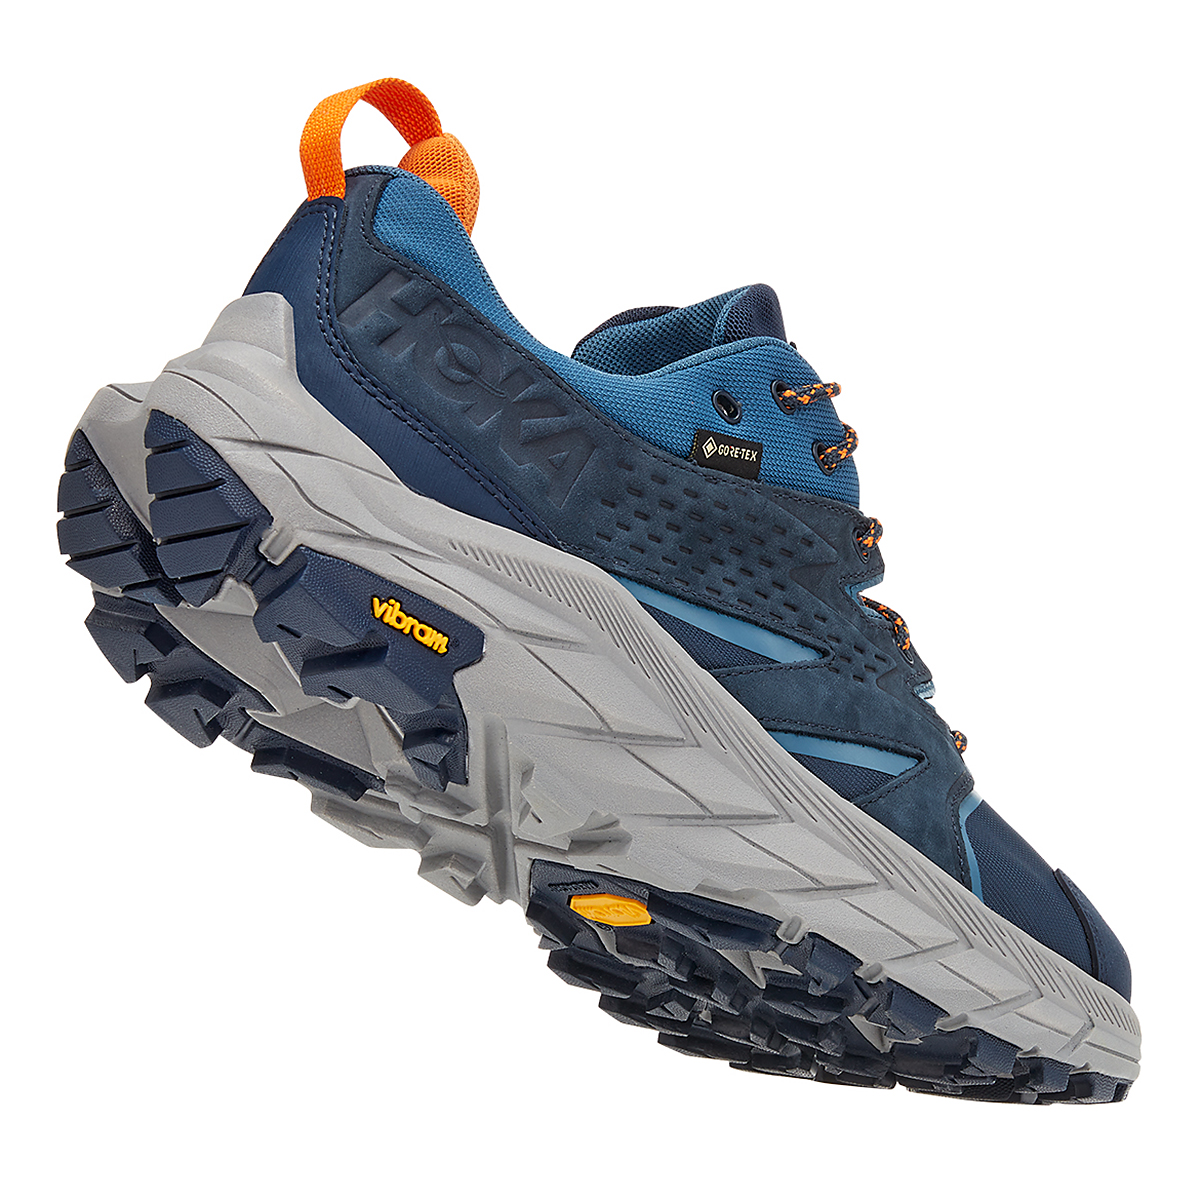 Men's Hoka One One Anacapa Low Gore-Tex Trail Running Shoe - Color: Outer Space/Real Teal - Size: 7 - Width: Regular, Outer Space/Real Teal, large, image 3